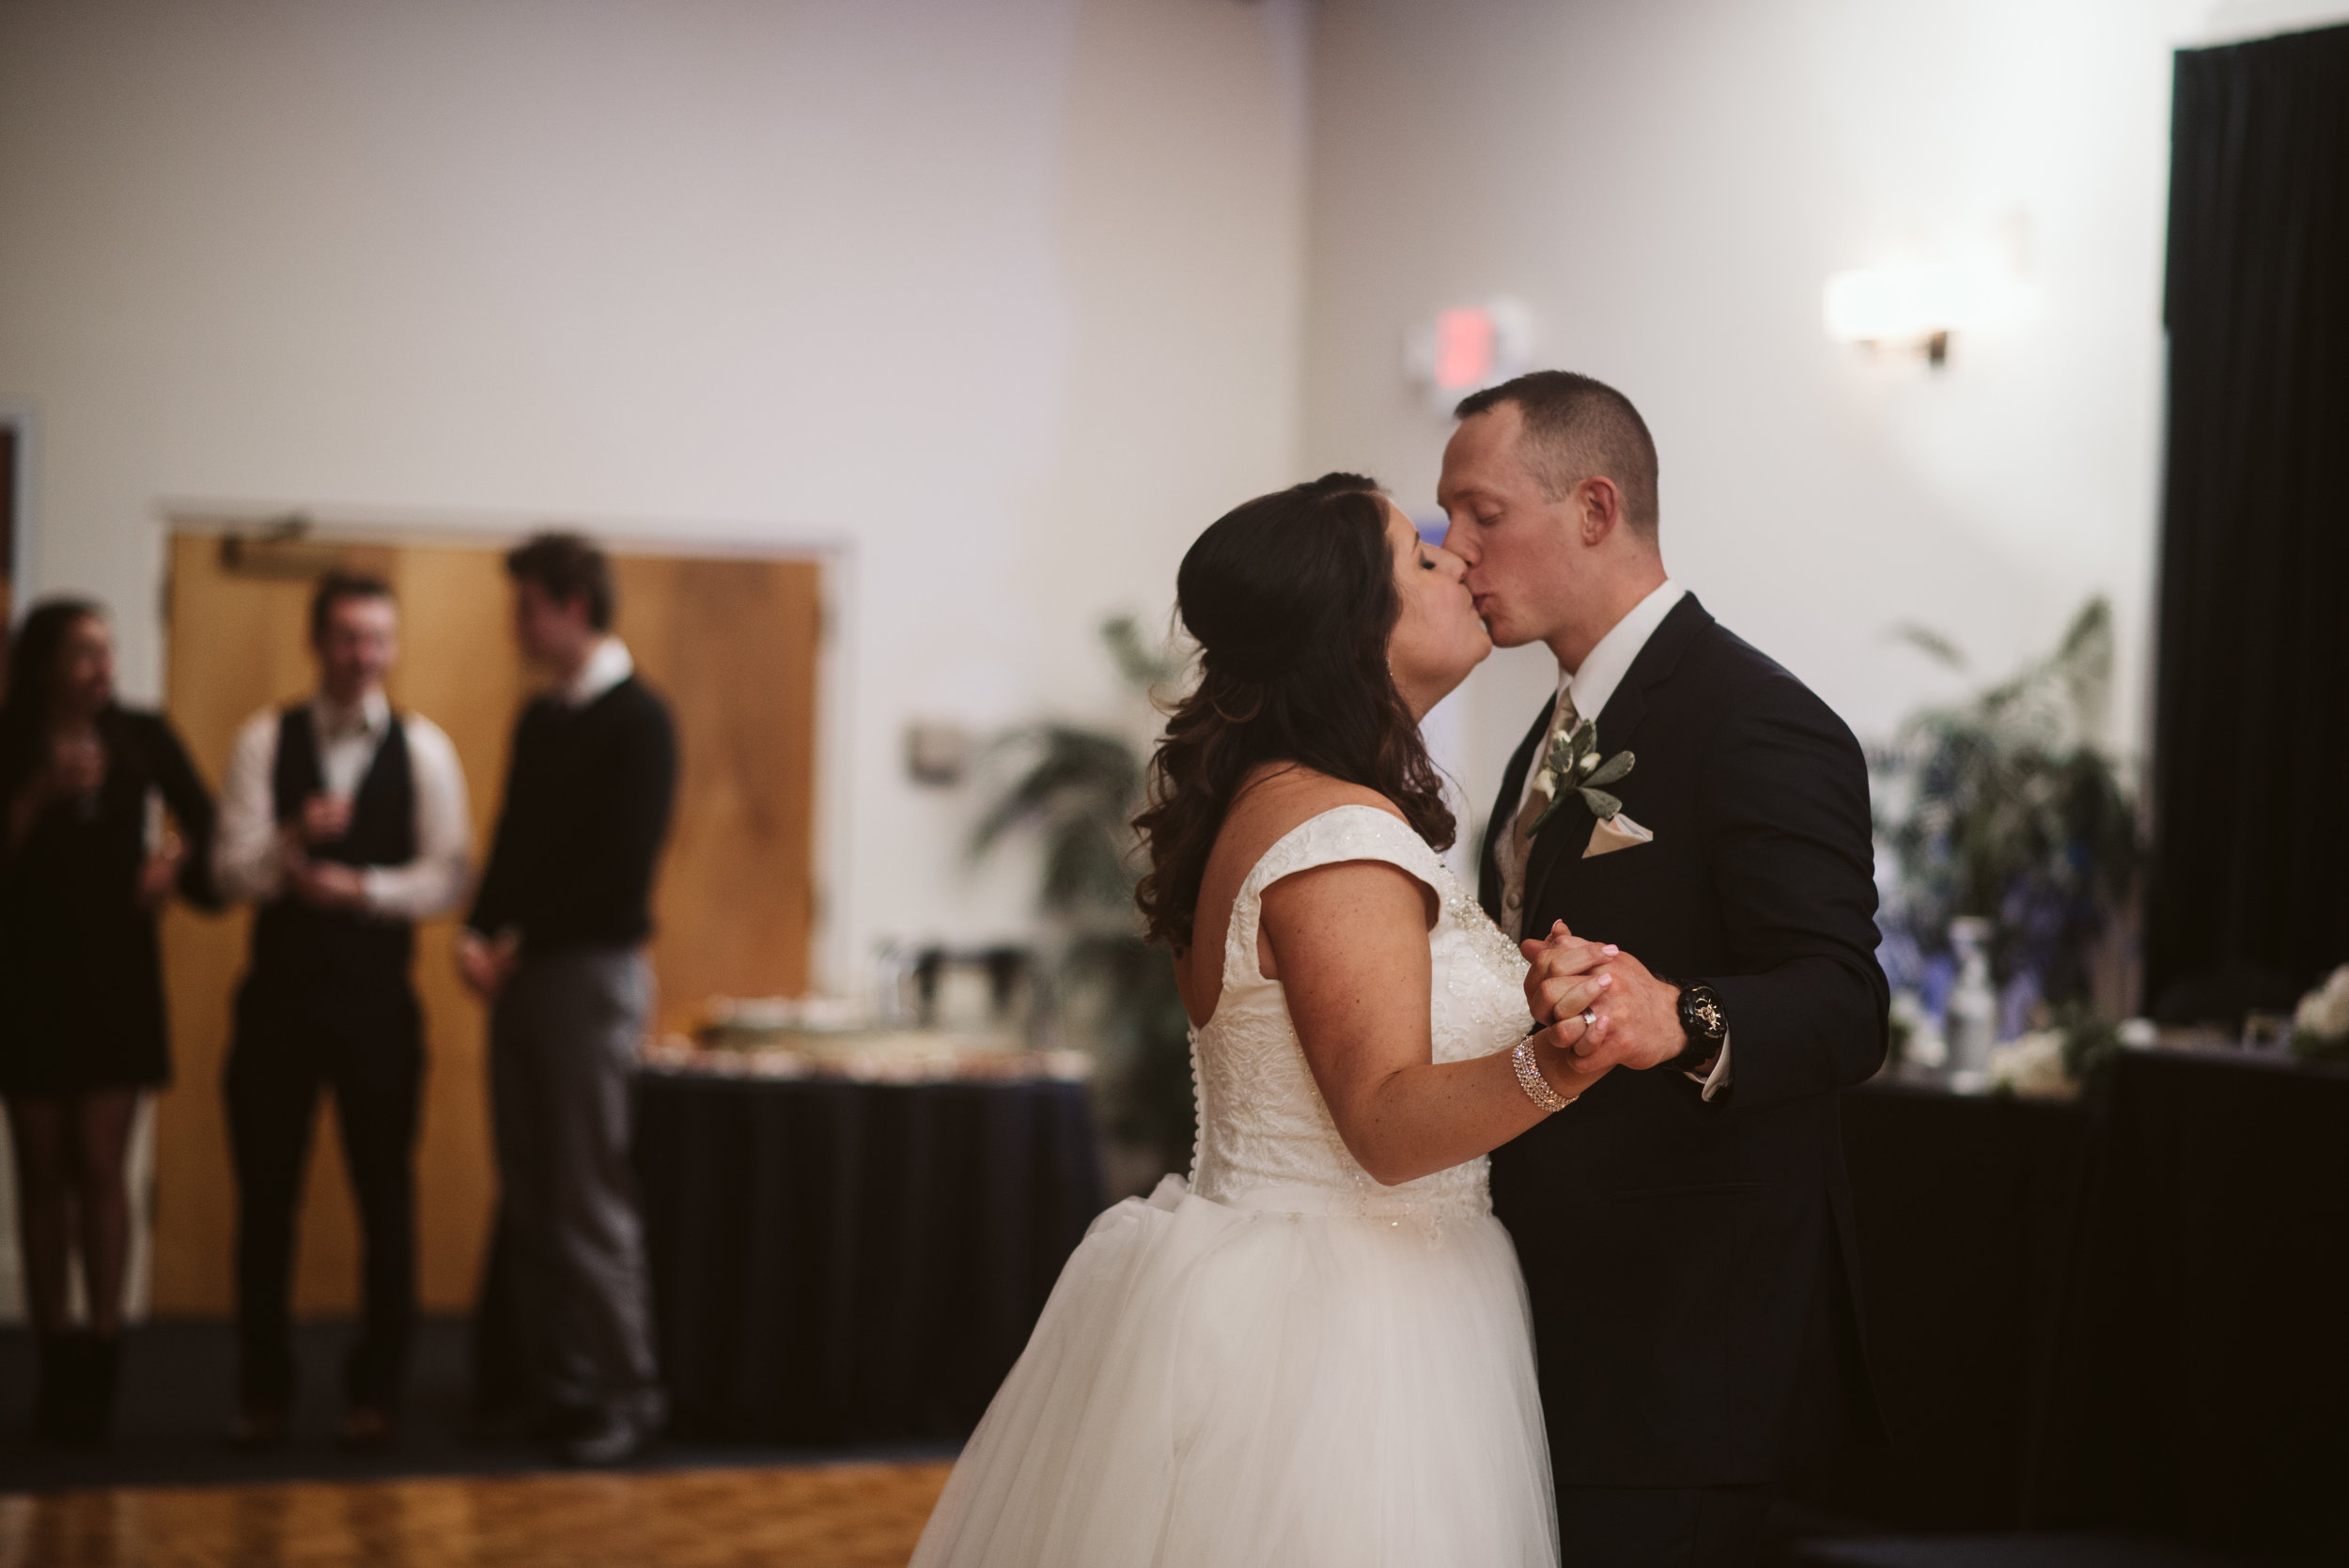 Bride and groom kiss during first dance in Michigan